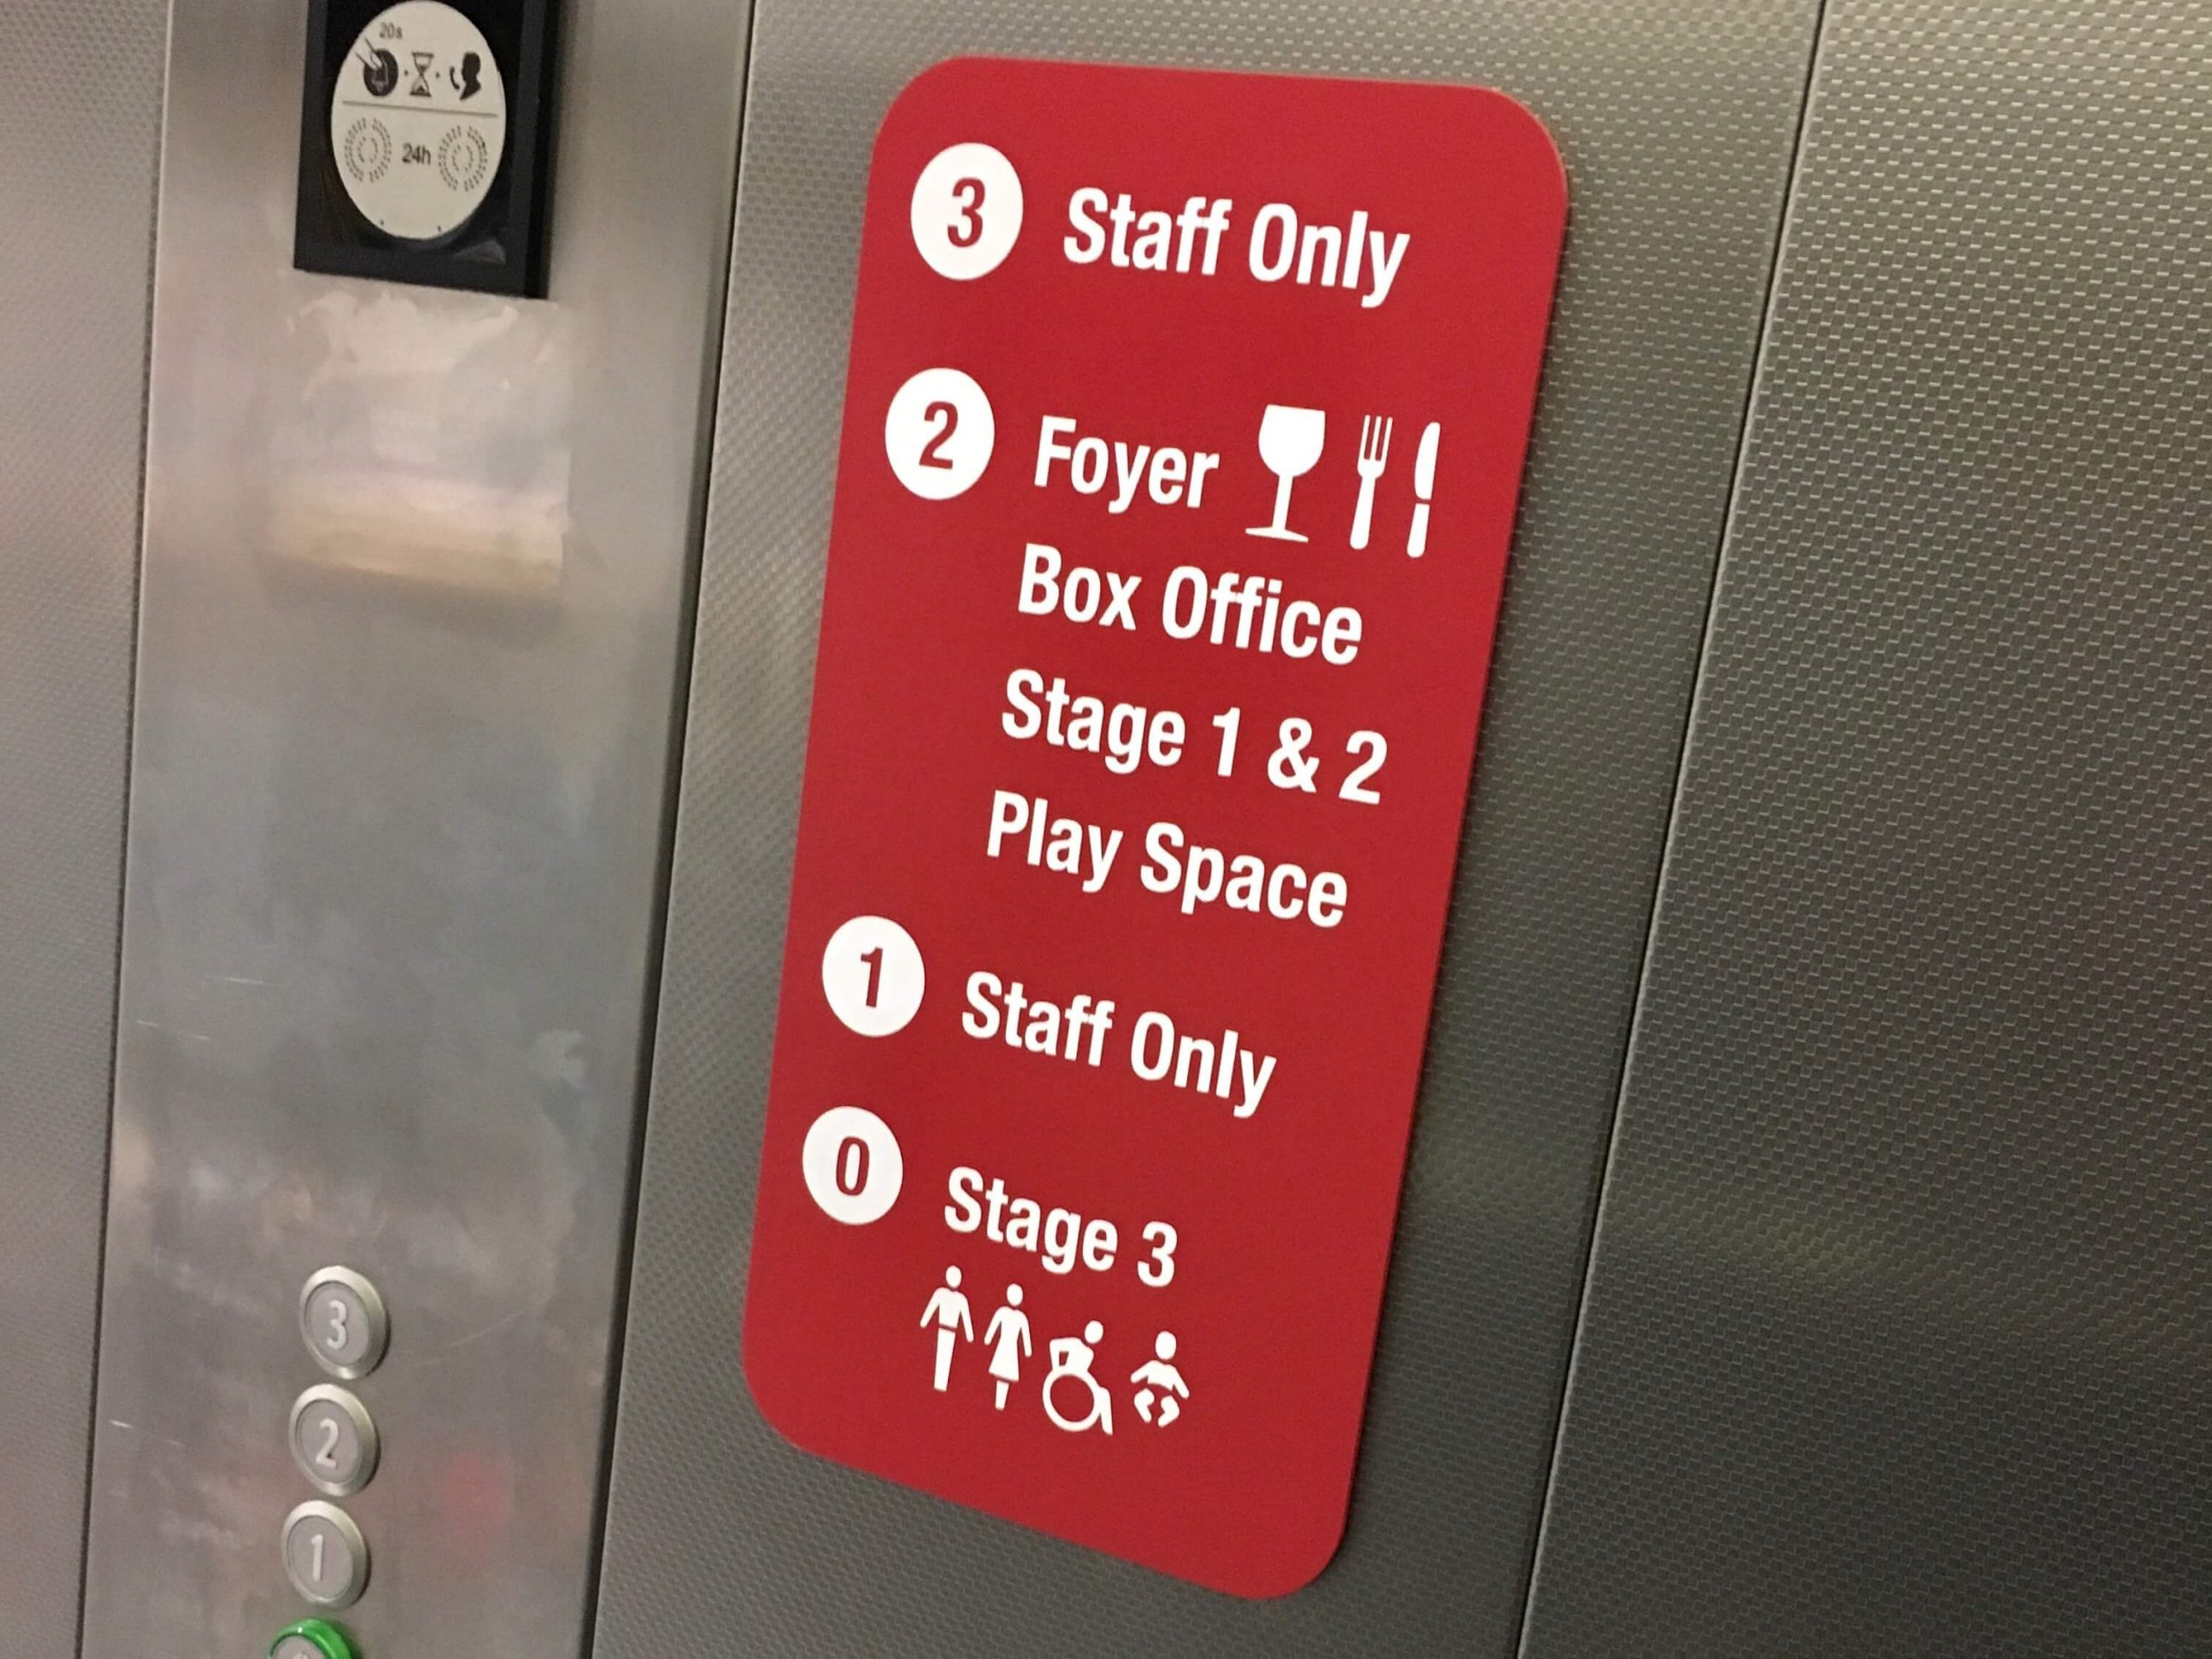 Wayfinding signage in theatre lifts